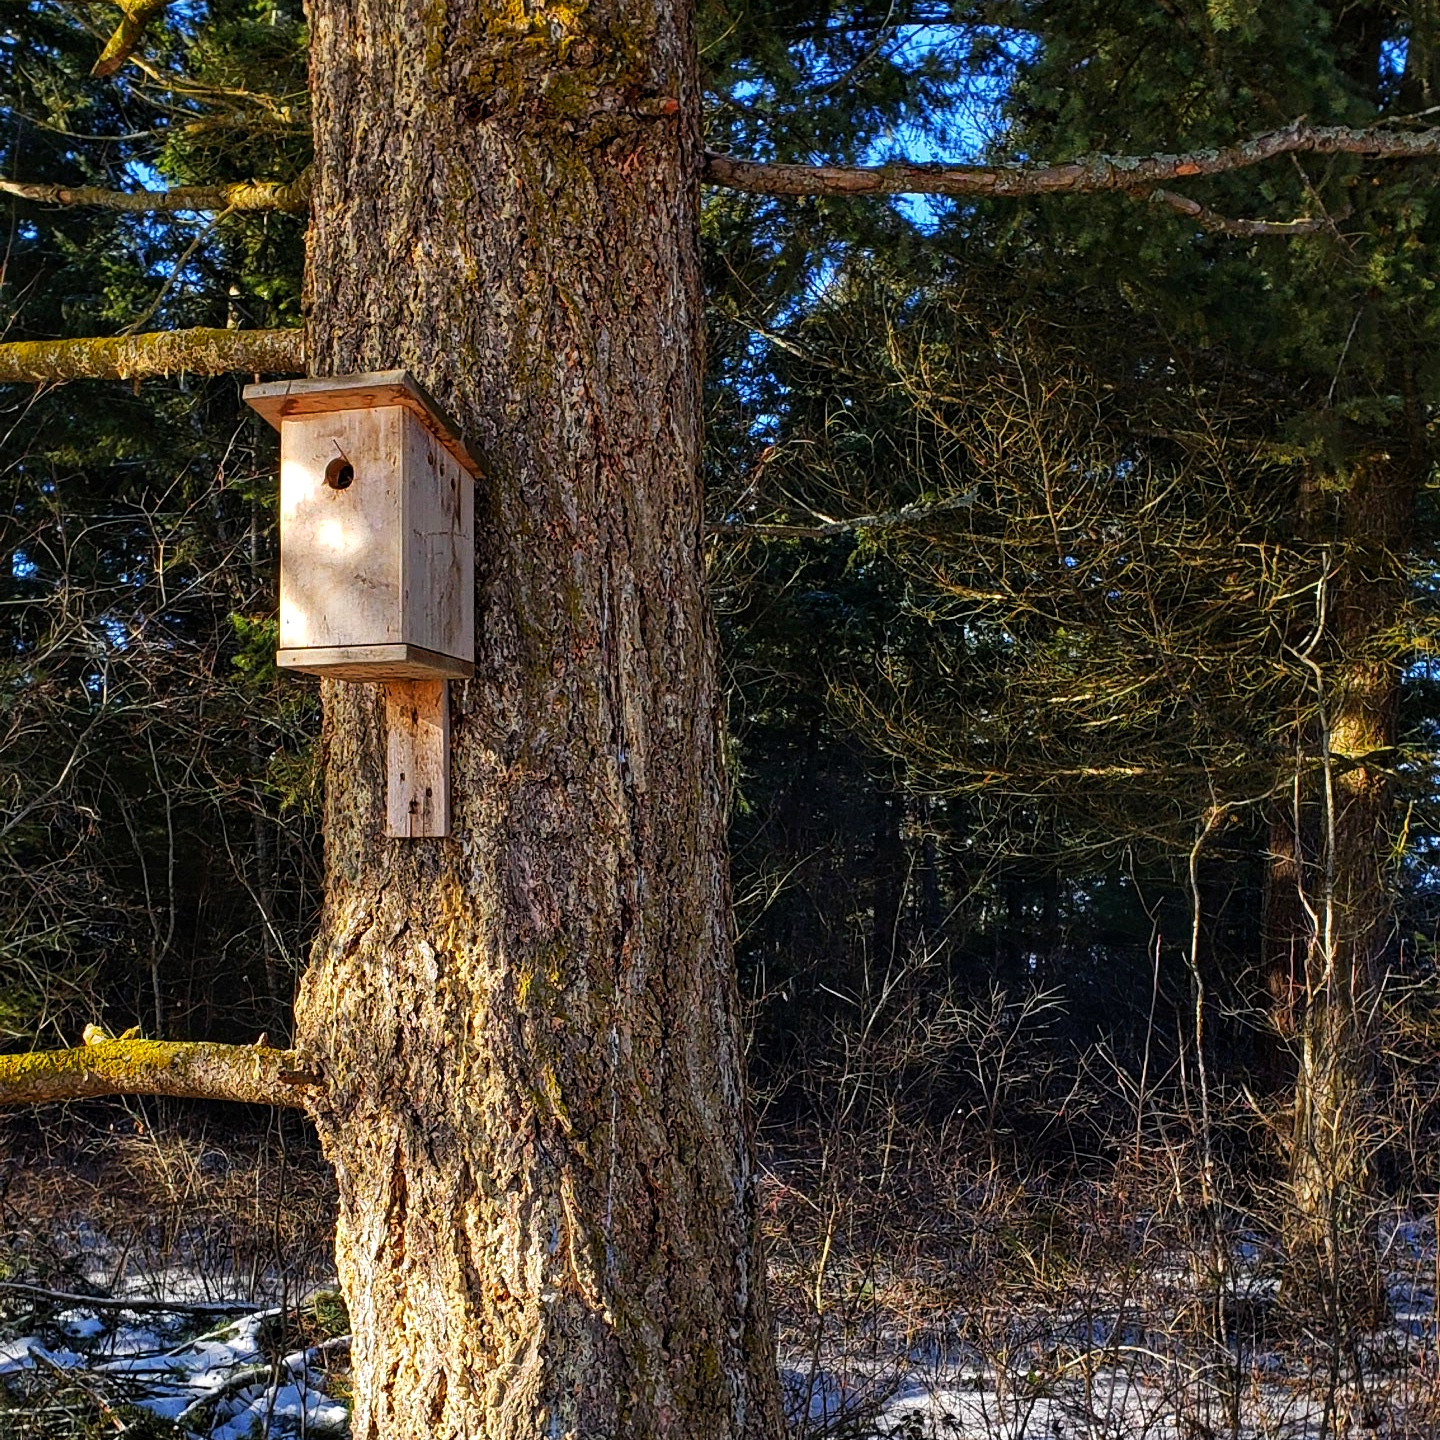 birdhouse on tree in the forest from www.ruralmag.com